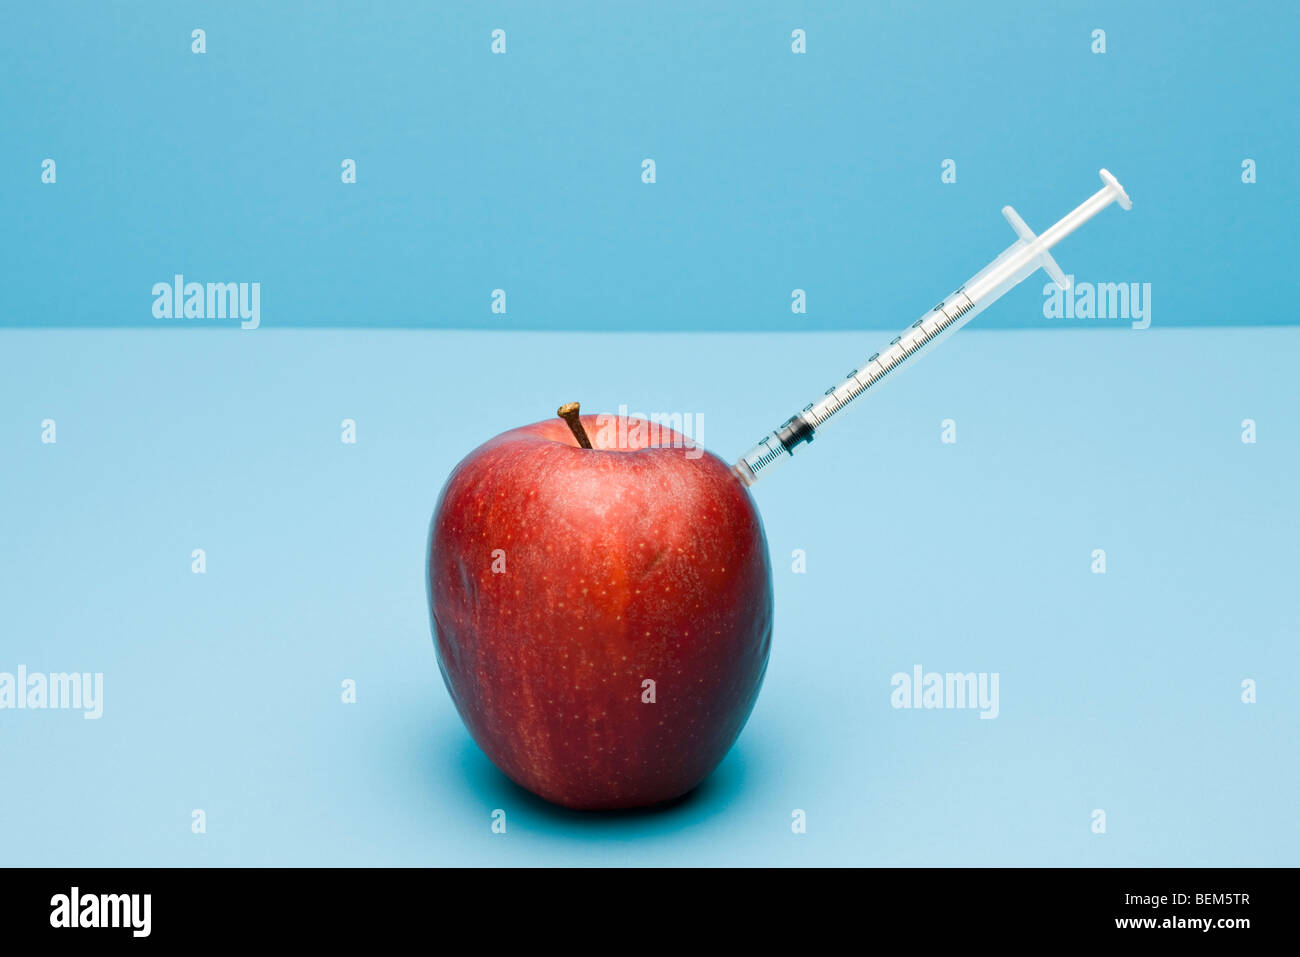 Concept de l'alimentation, la seringue qui sort d'apple Photo Stock